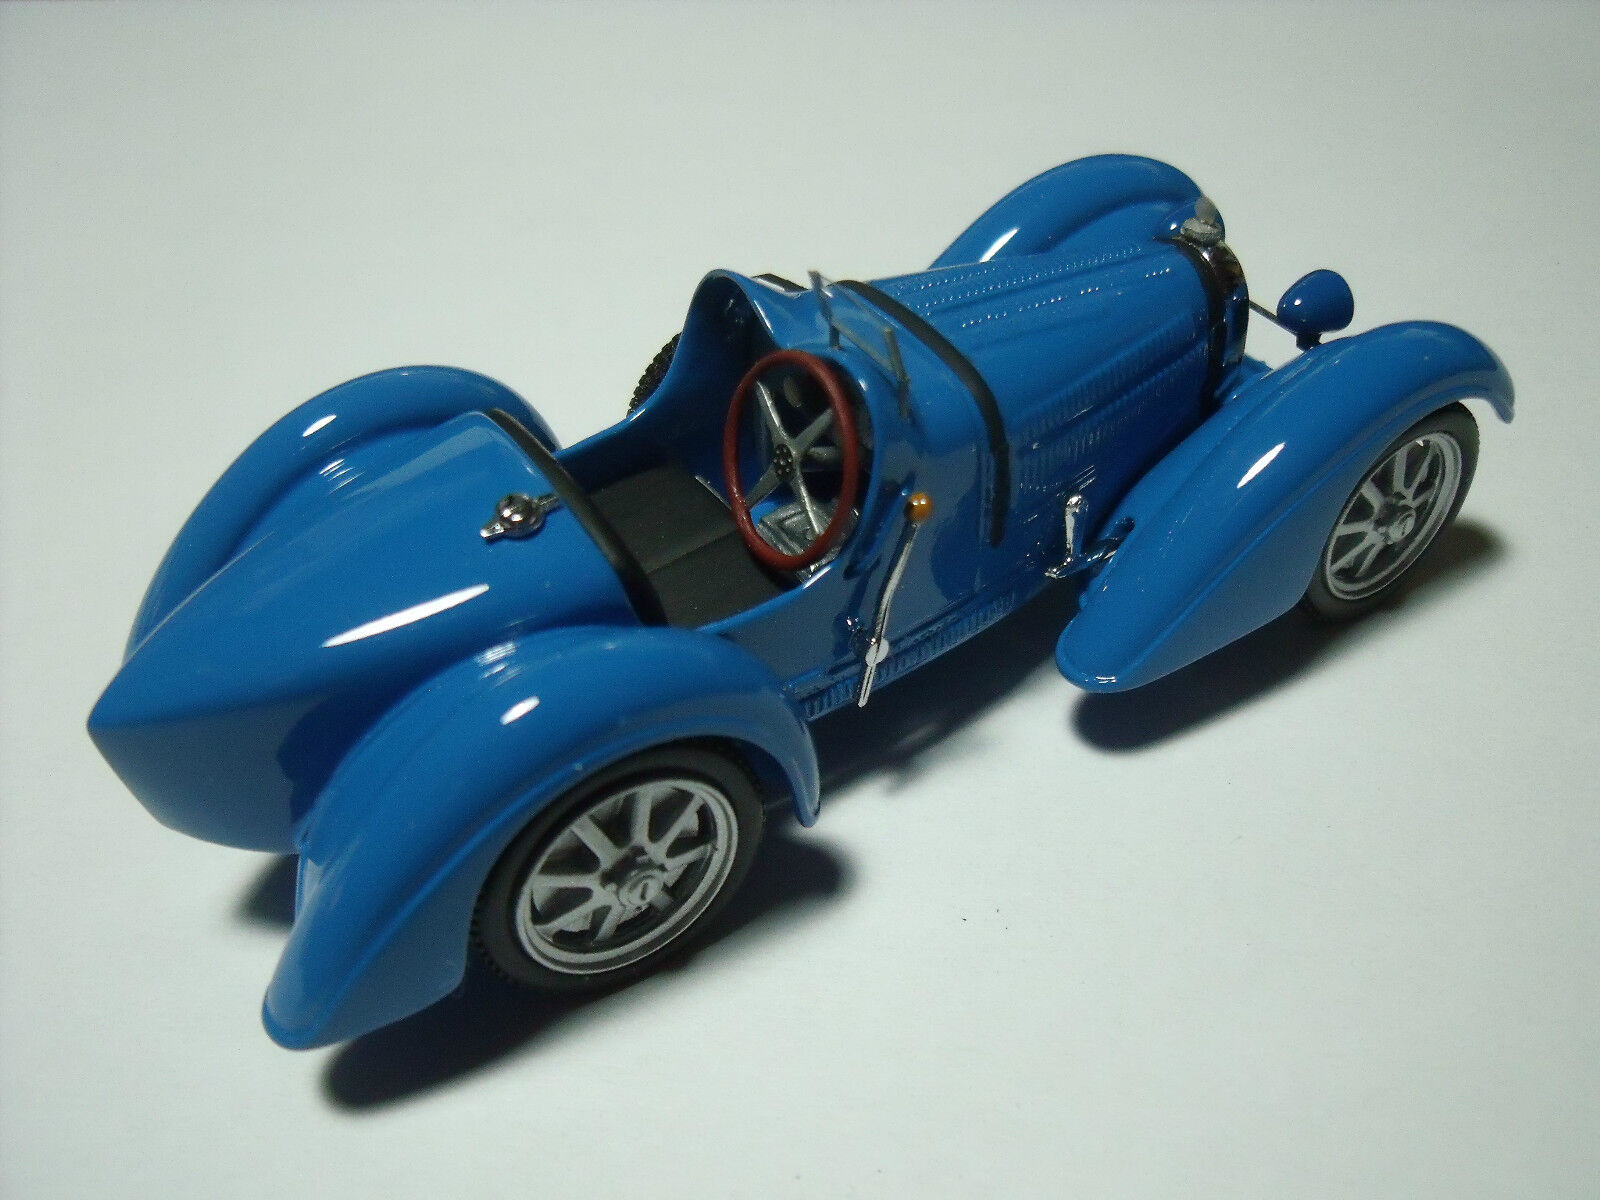 BUGATTI  35  B  VERSION  MUSEE  SCHLUMPF  VROOM  KIT A  MONTER  1 43  NO  SPARK